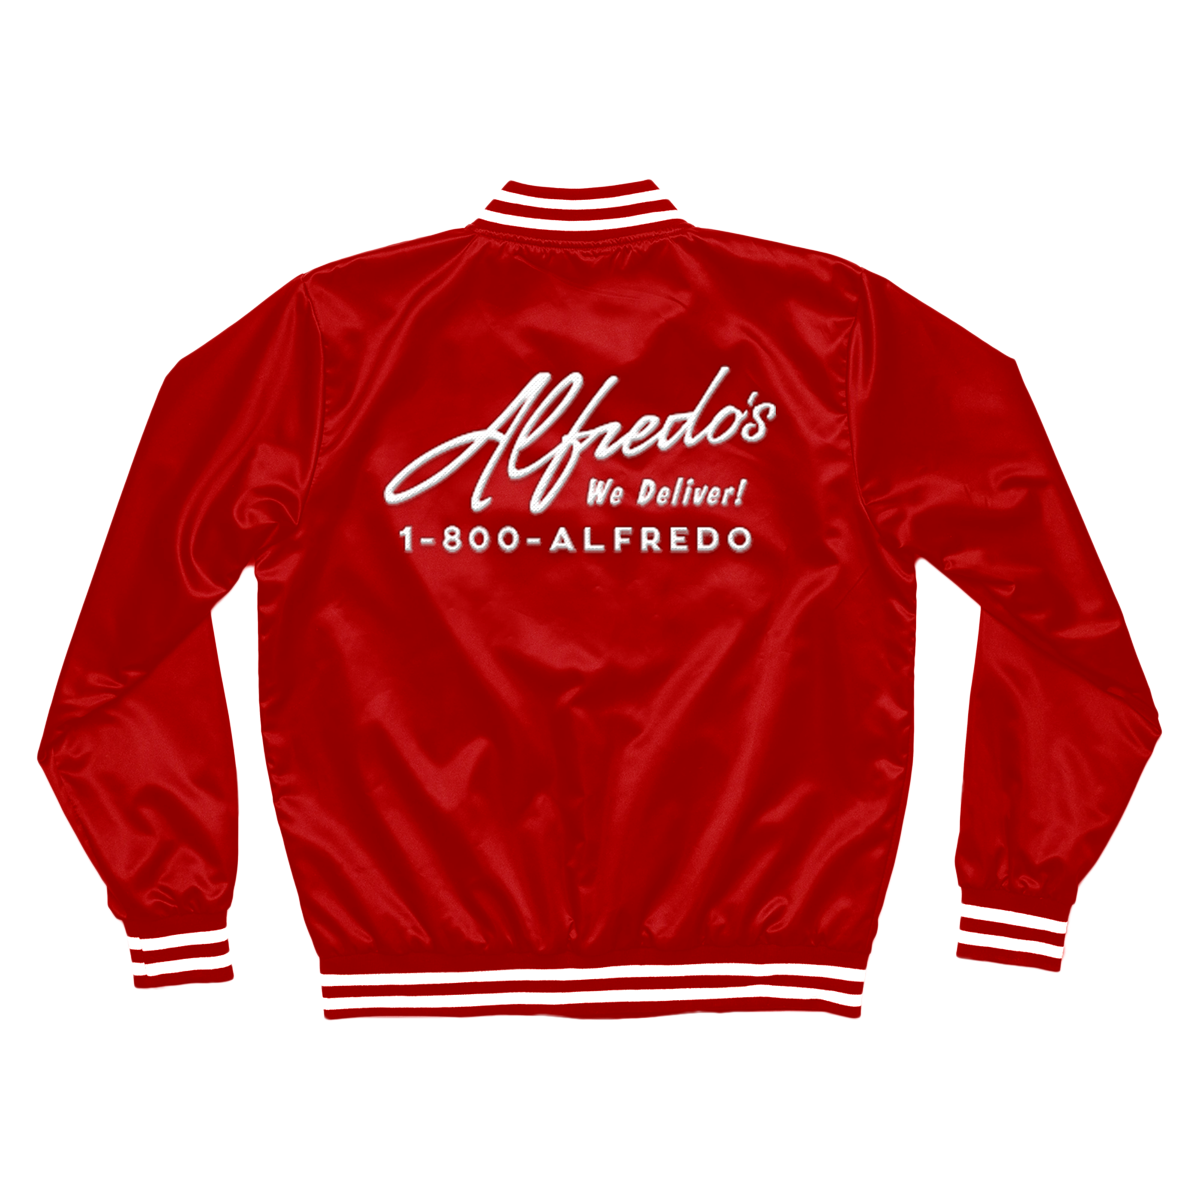 Alfredo's Delivery Jacket - Red